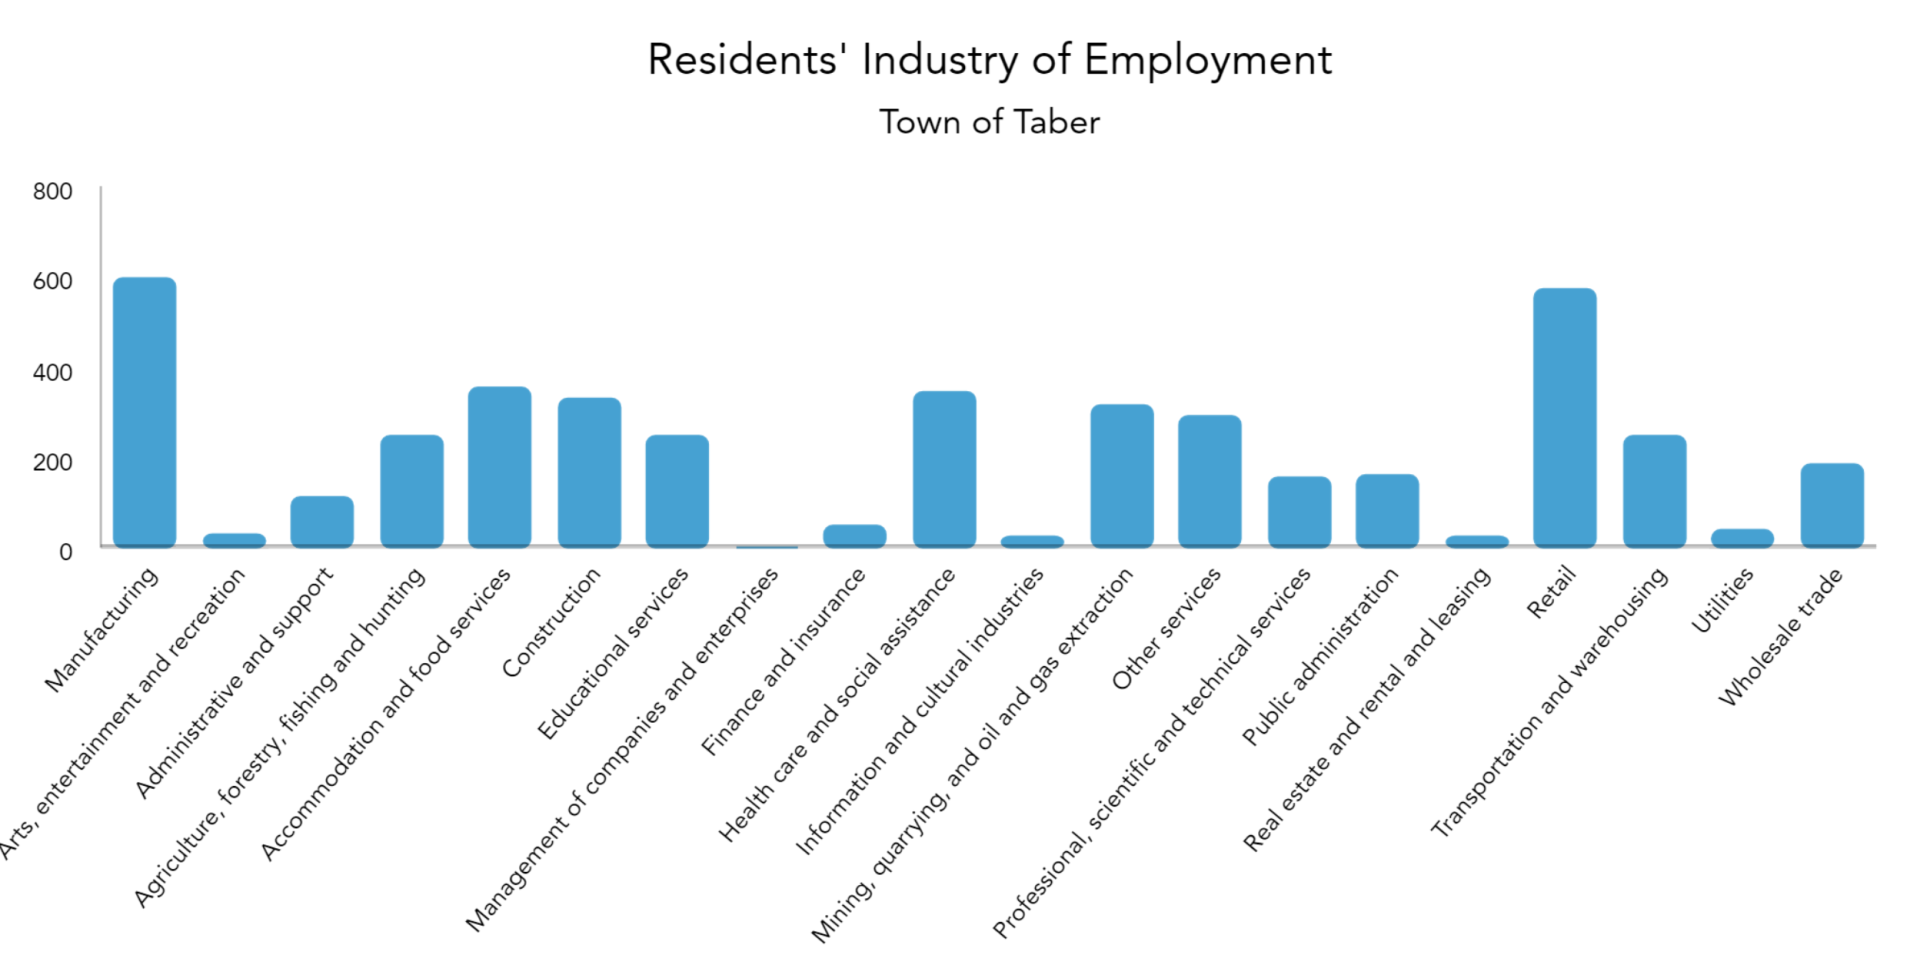 Residents' Industry of Employment